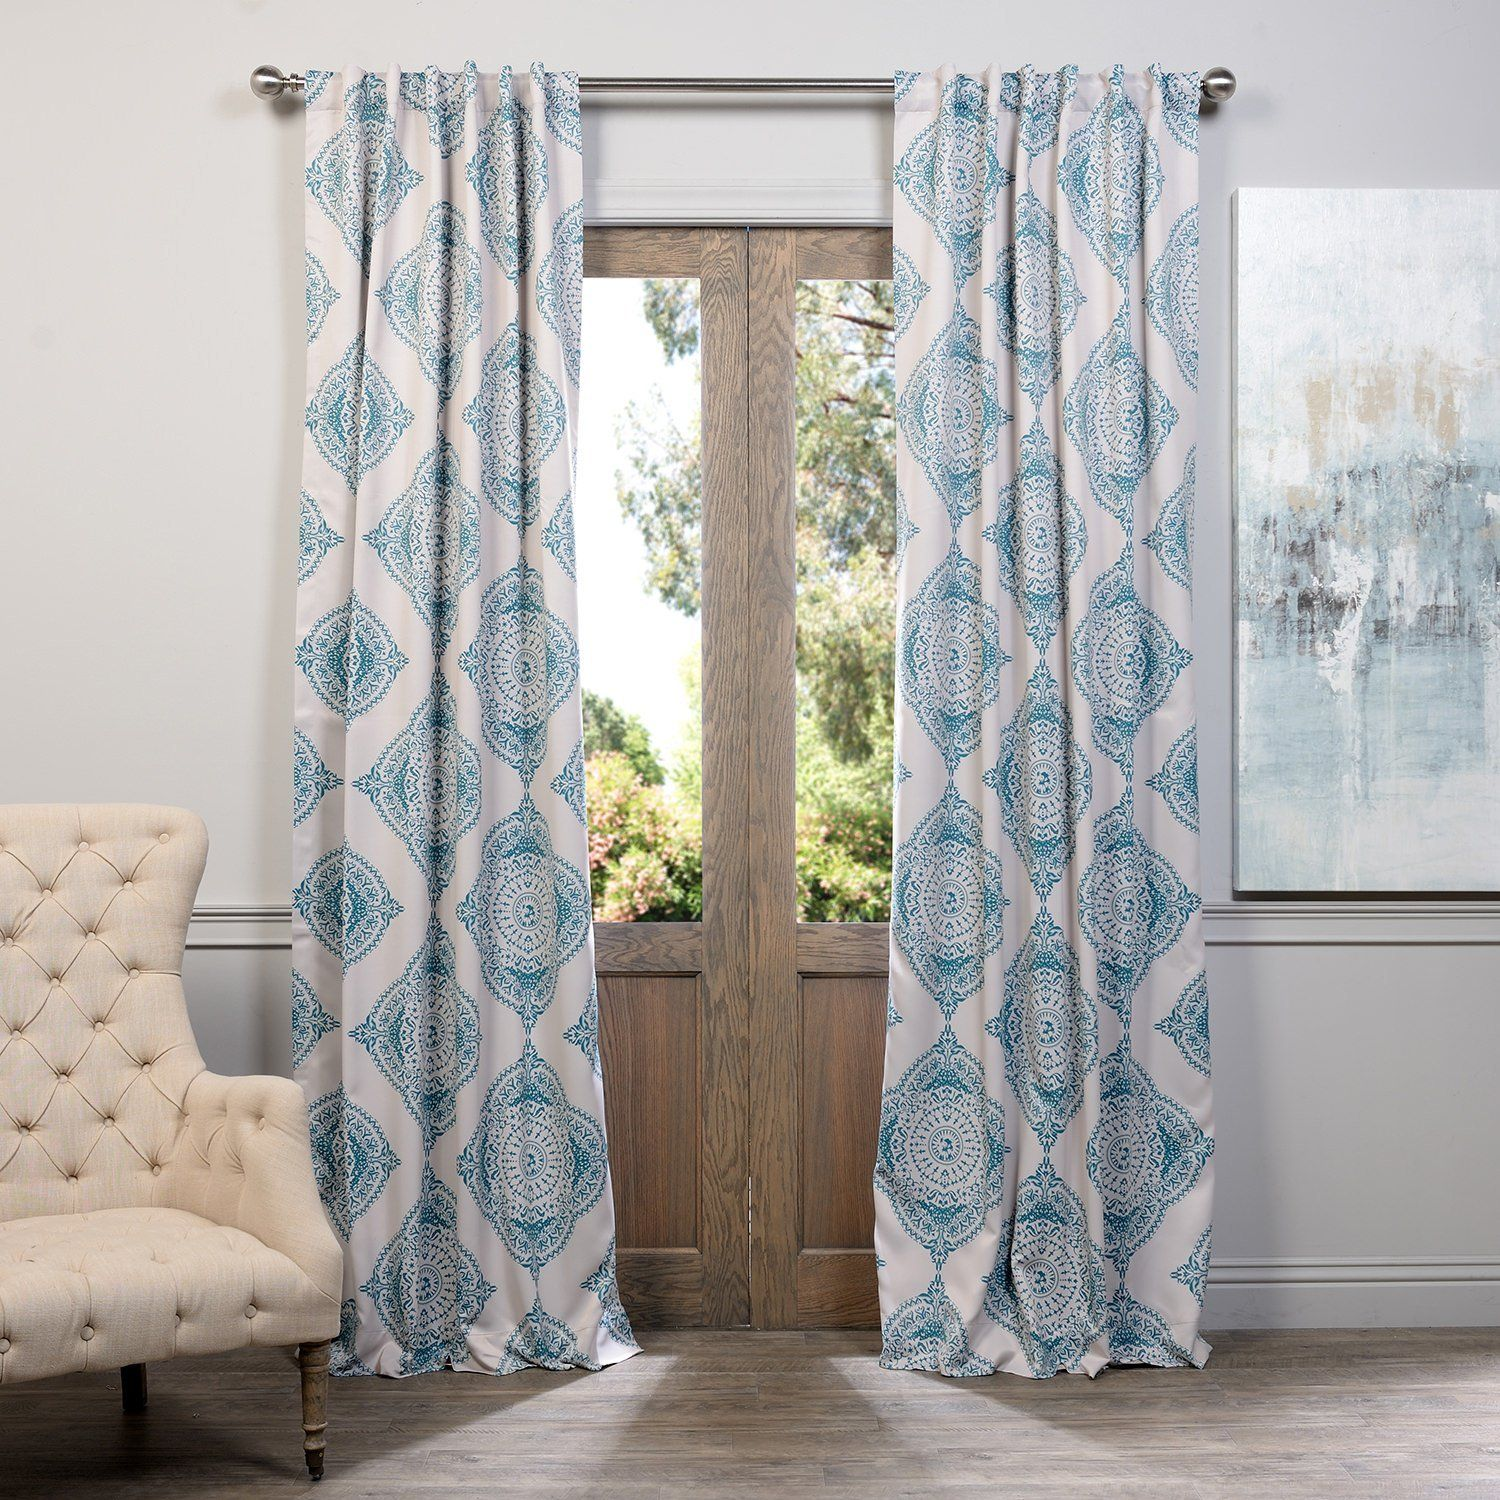 Interior Designs With 108 Blackout Curtain Henna Teal You Will Instantly Fall In Love